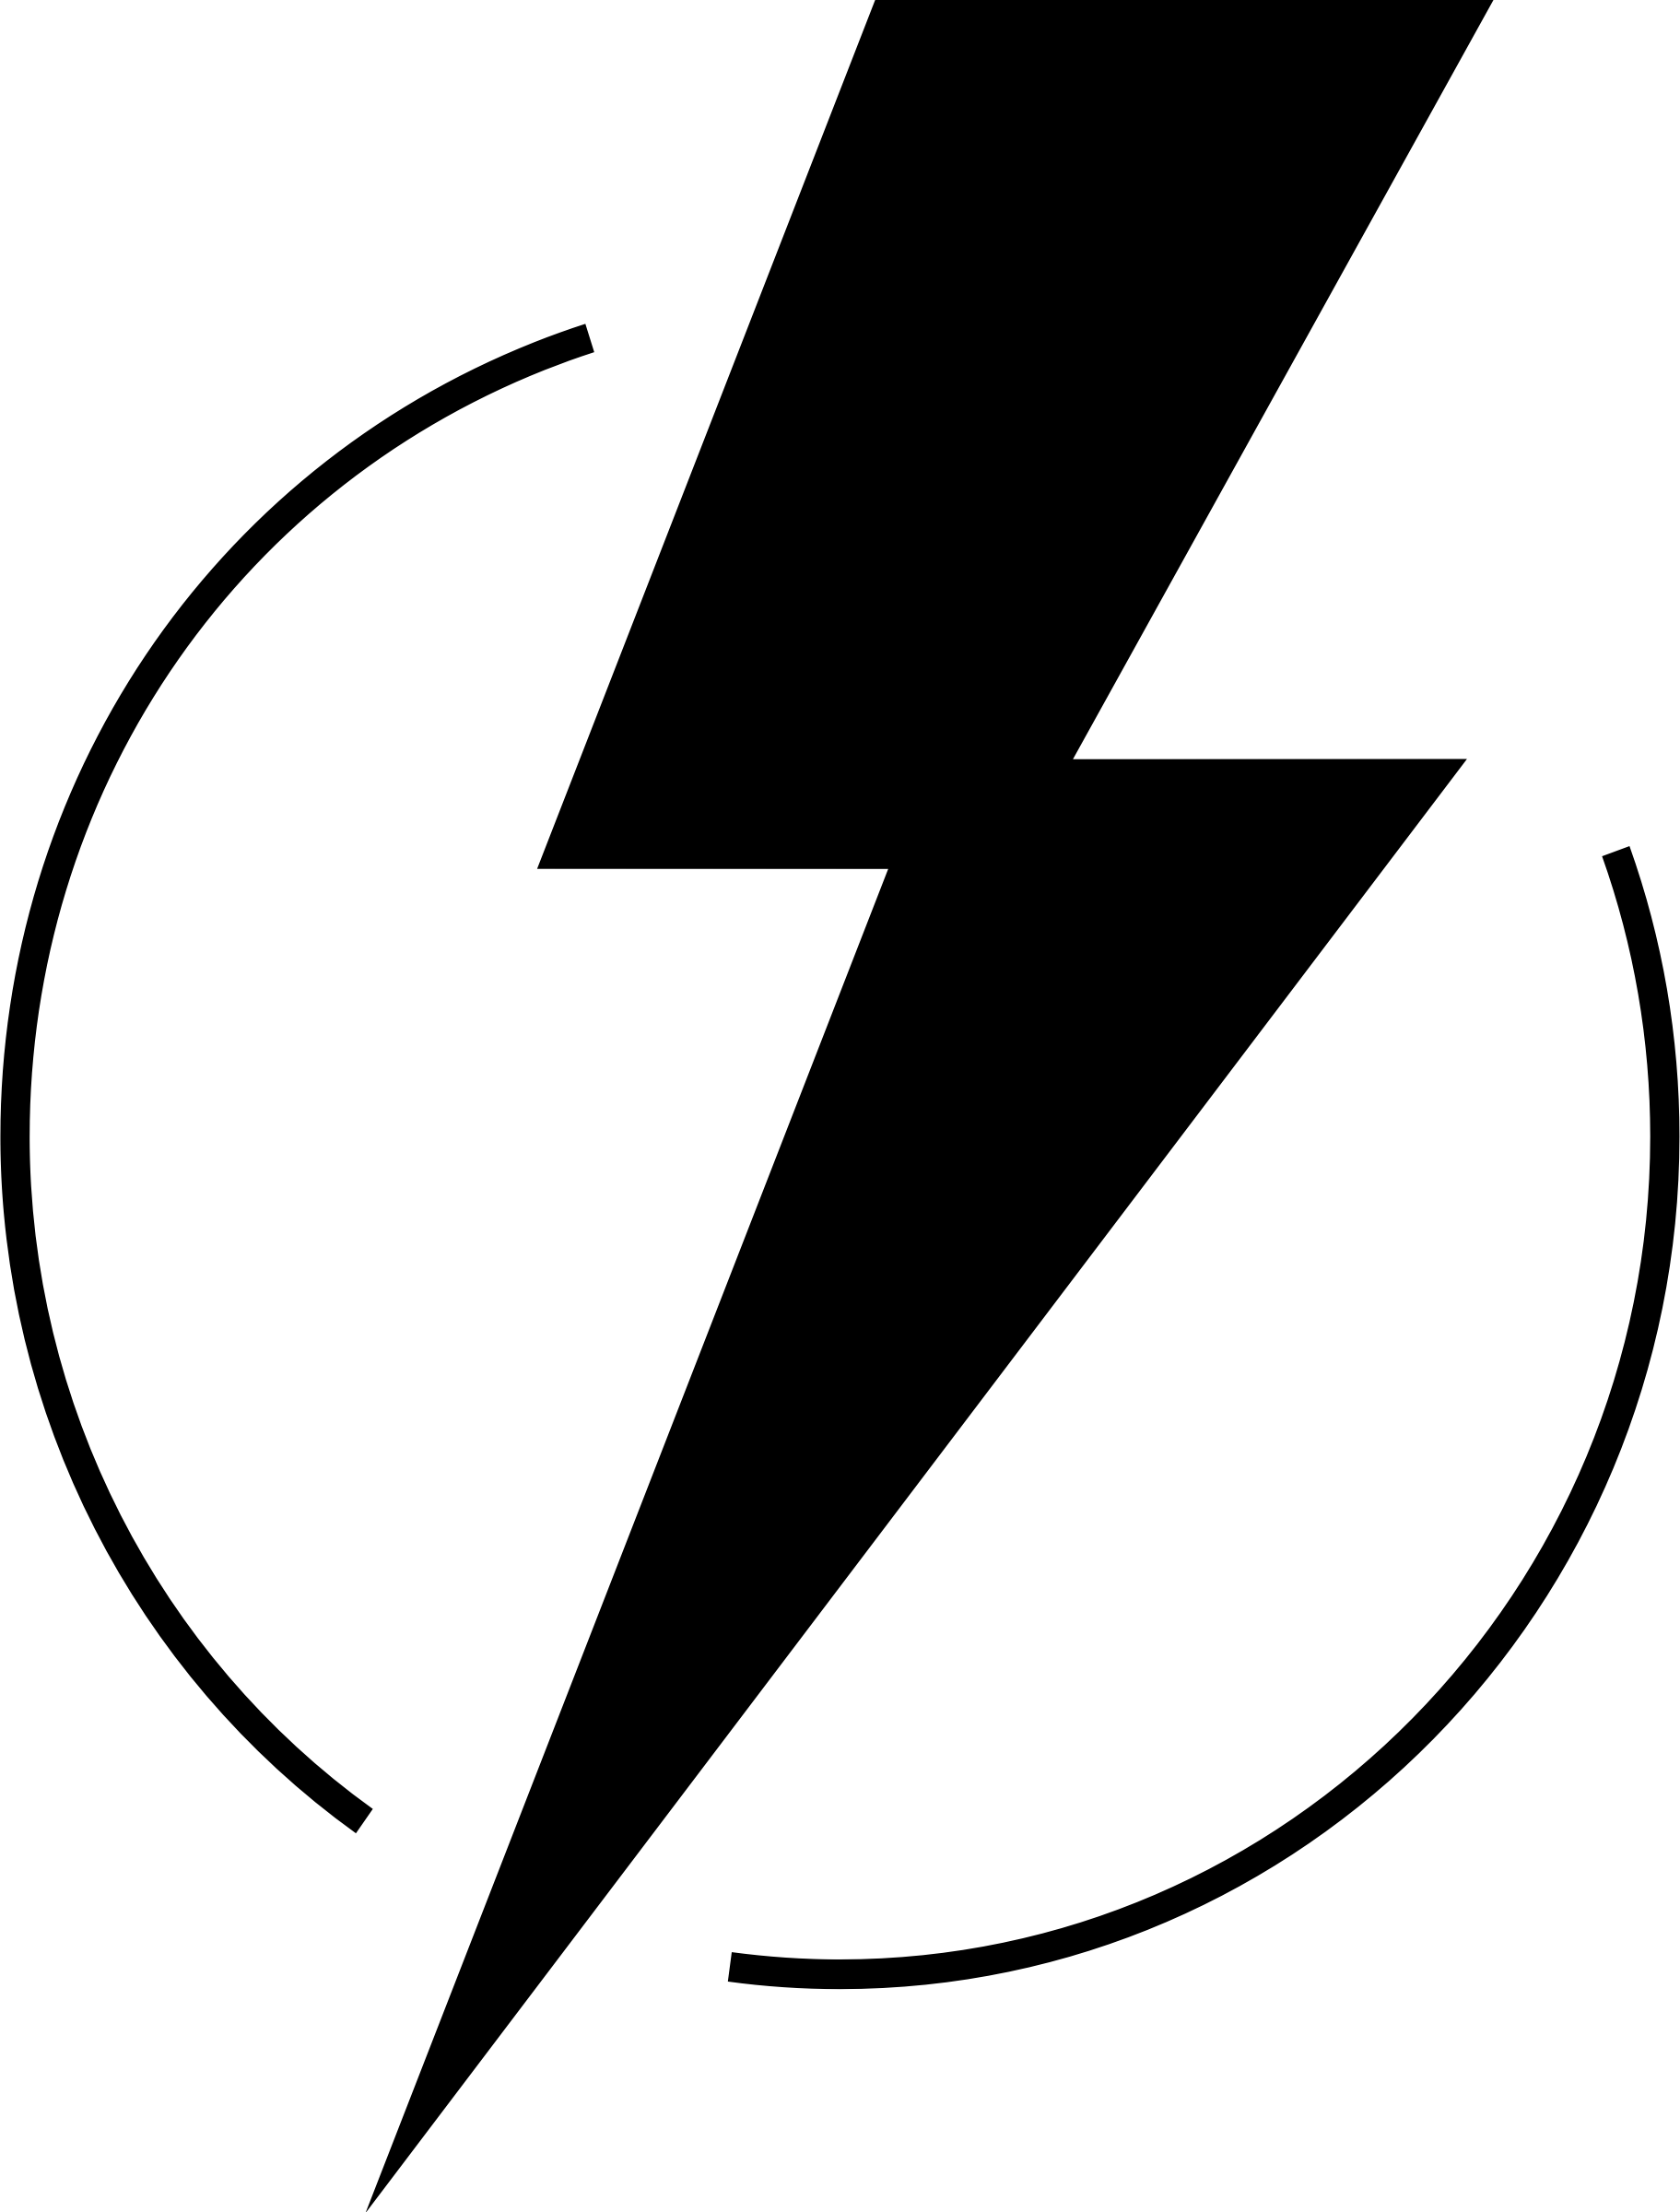 Lightning Png Transparent Background Lightning Bolt Icon Vector Clipart Image Free Stock